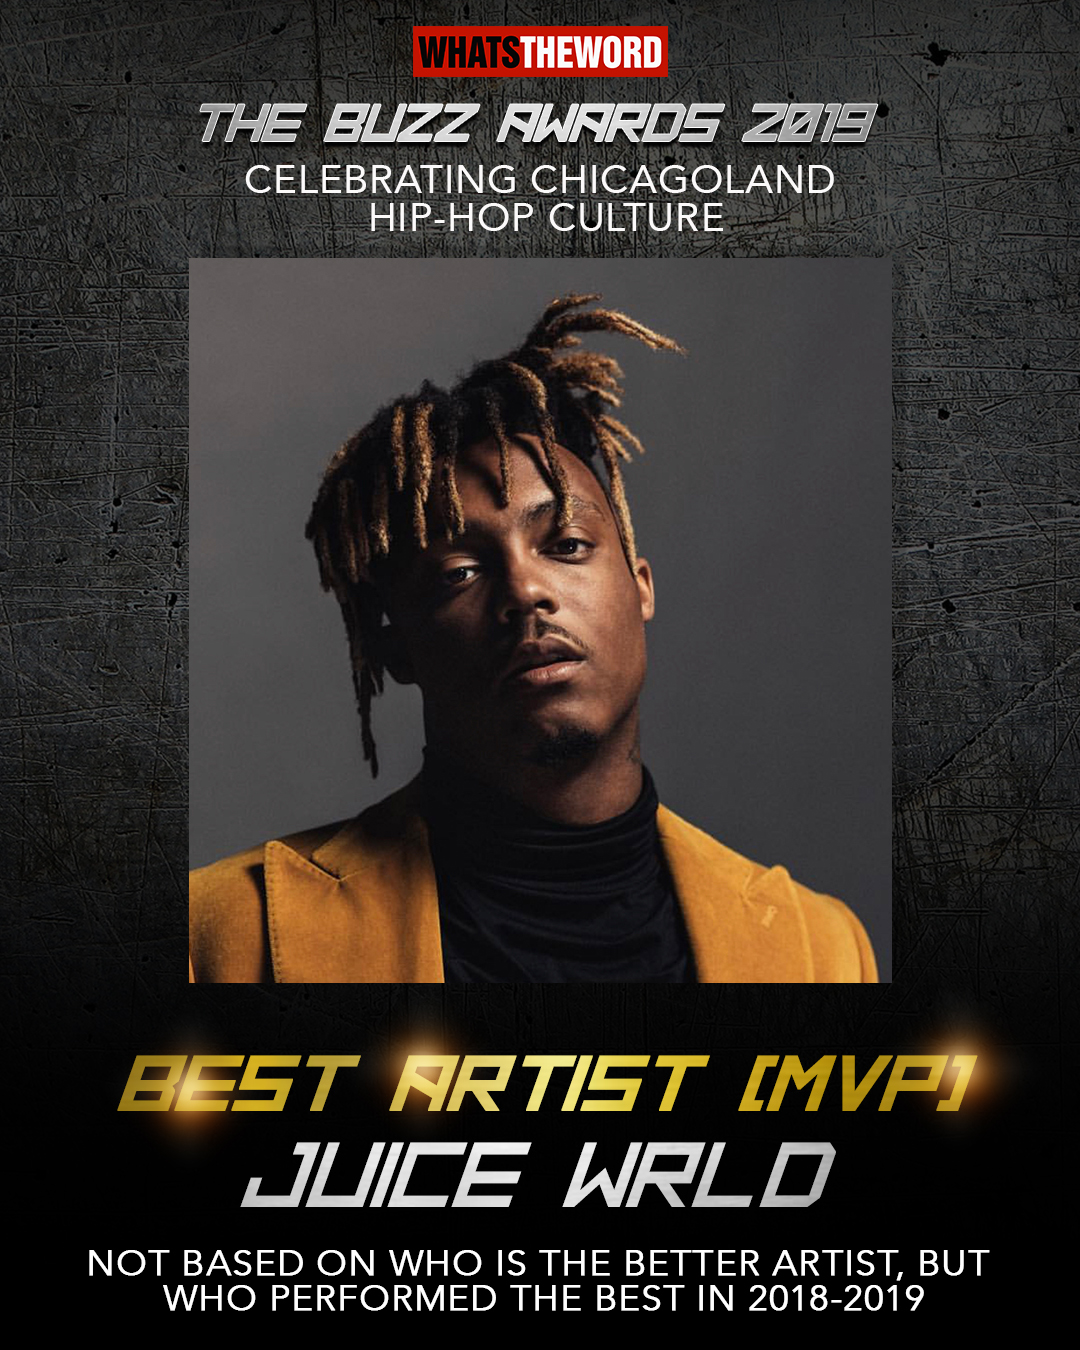 Best Artist_The Buzz Awards 2019.jpg